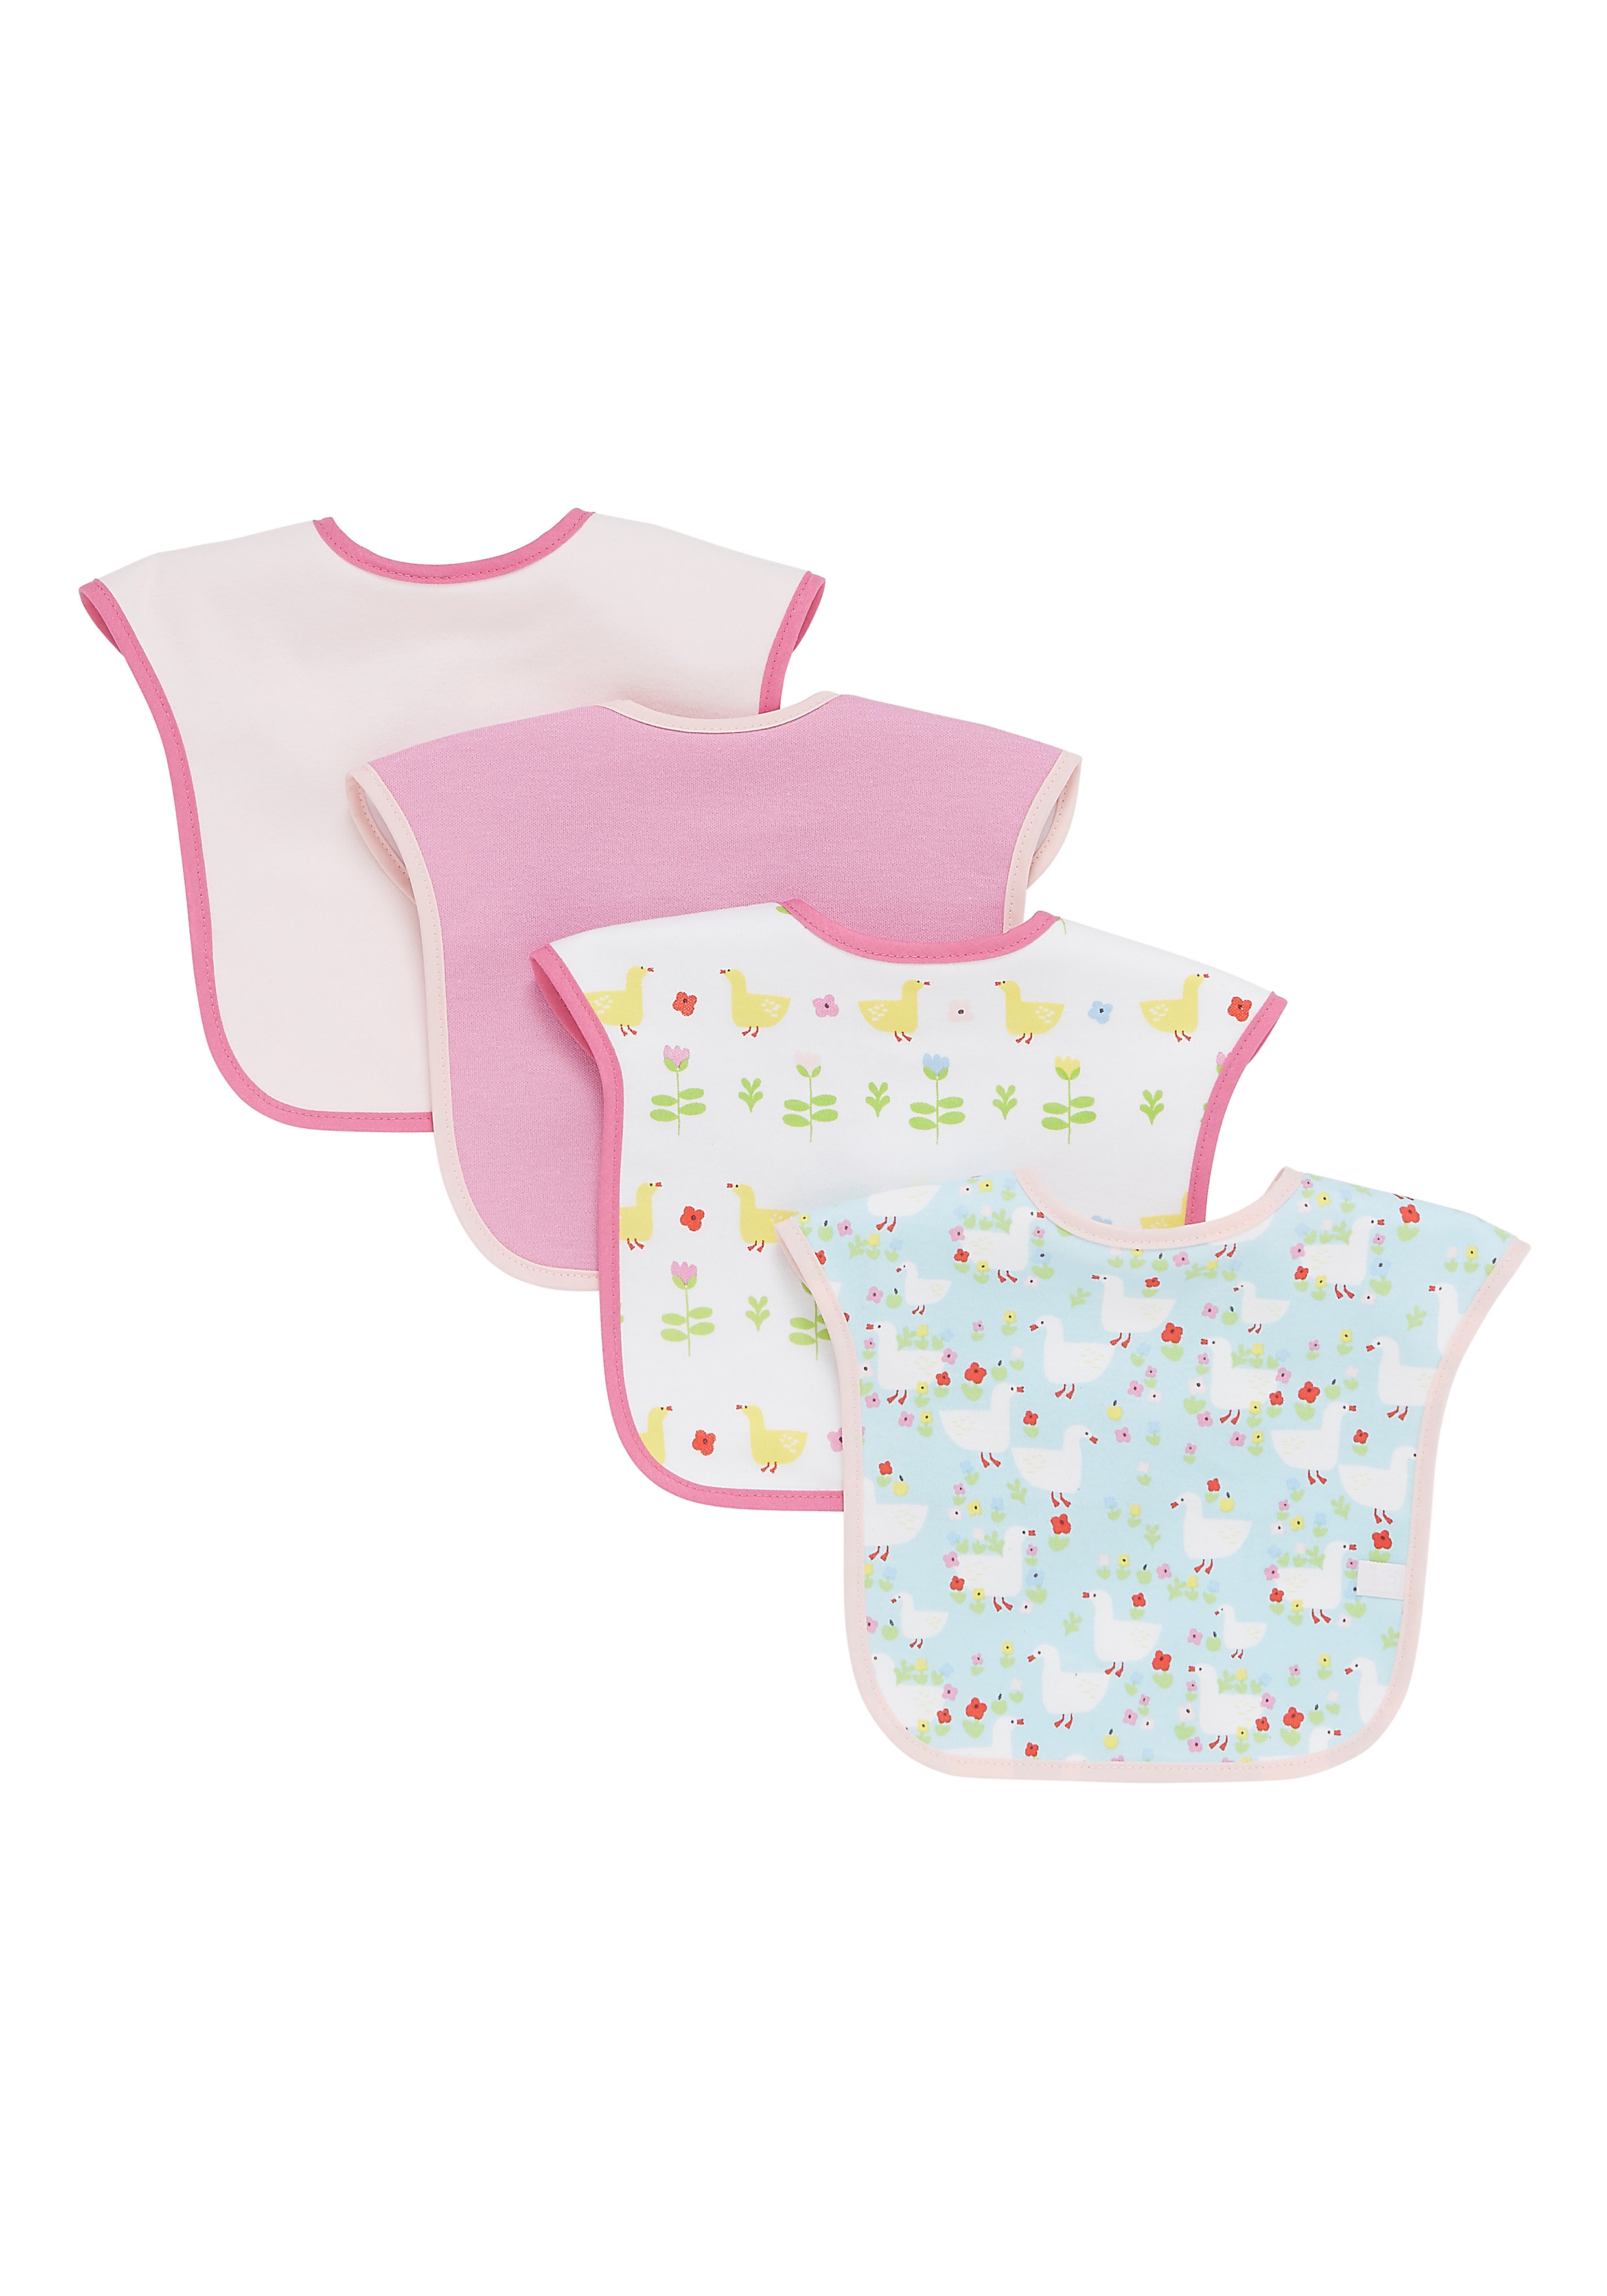 Mothercare   Mothercare Farm Toddler Bibs Pack of 4 Mutil